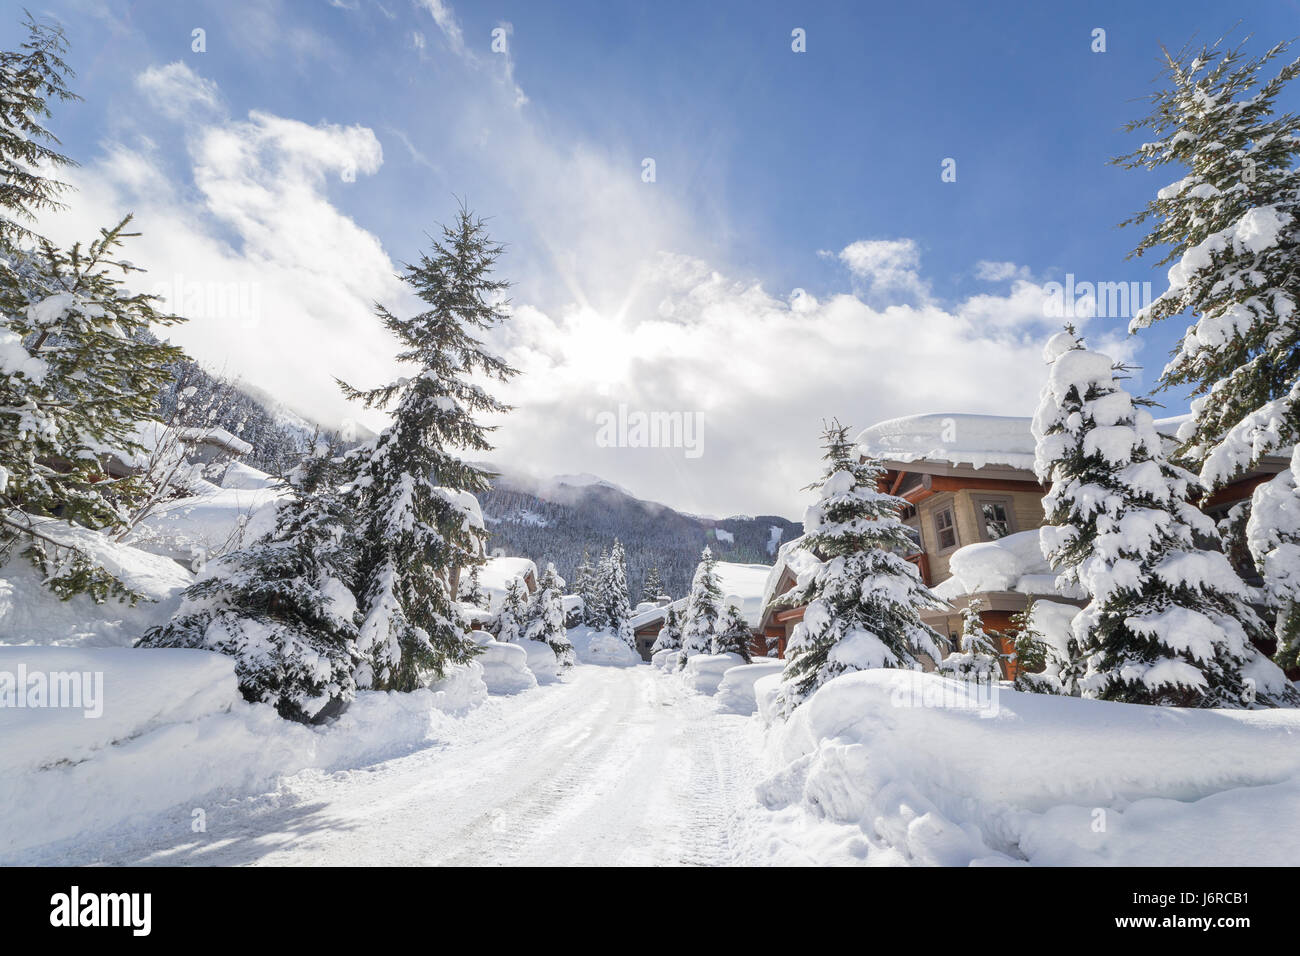 Alpine homes at the foot of Whistler Mountain. - Stock Image